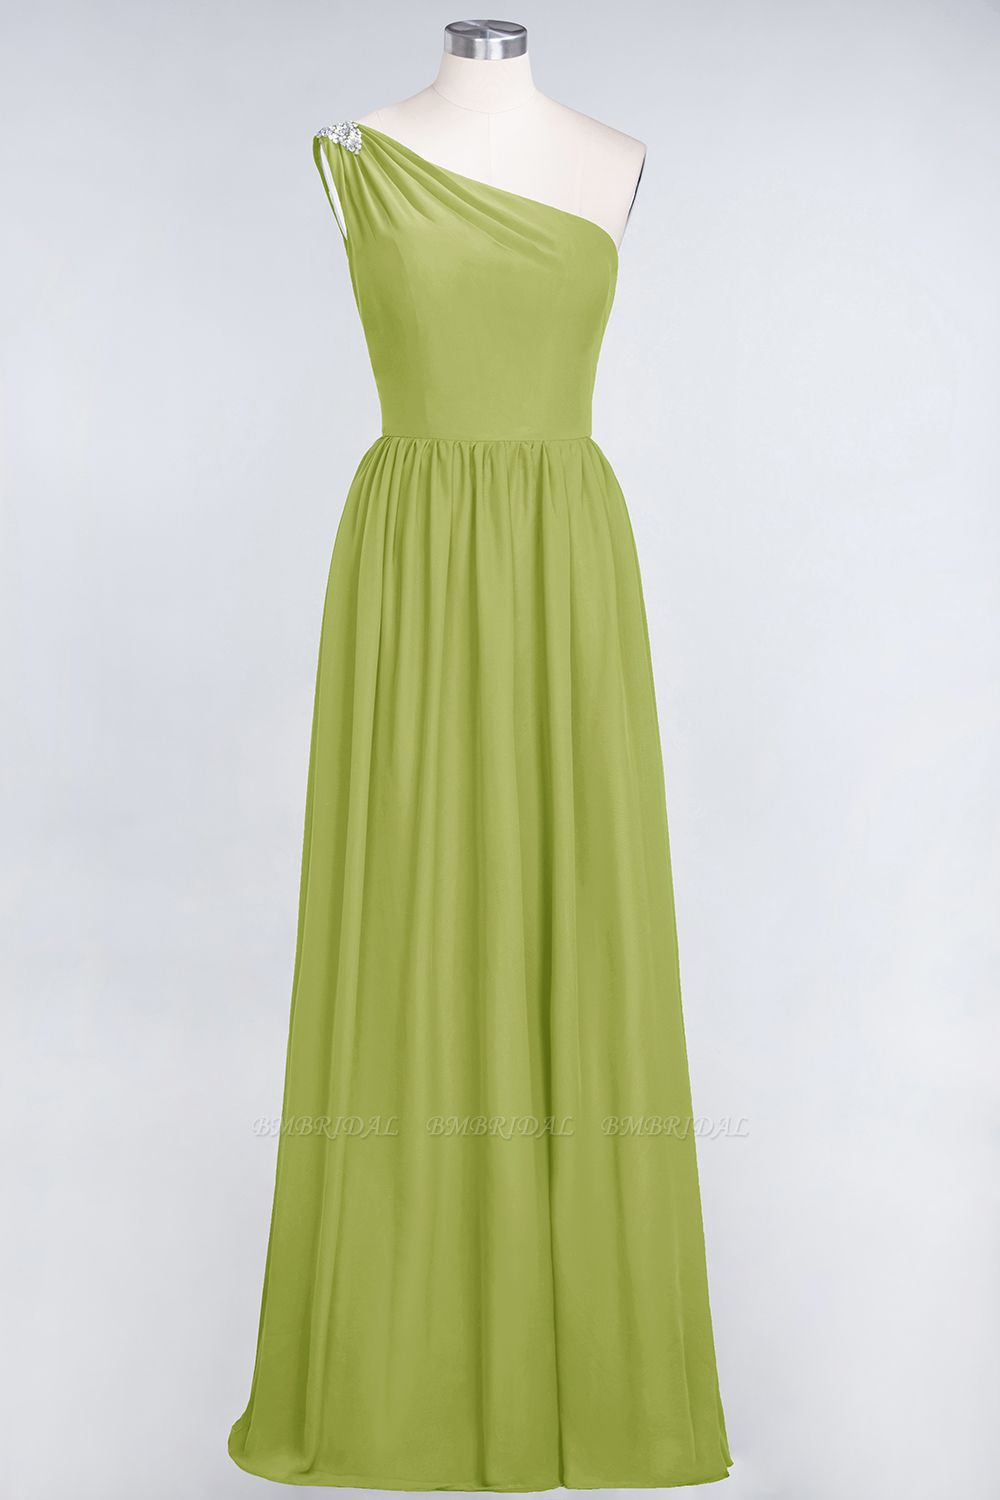 Affordable Chiffon One-Shoulder Ruffle Bridesmaid Dress with Beadings